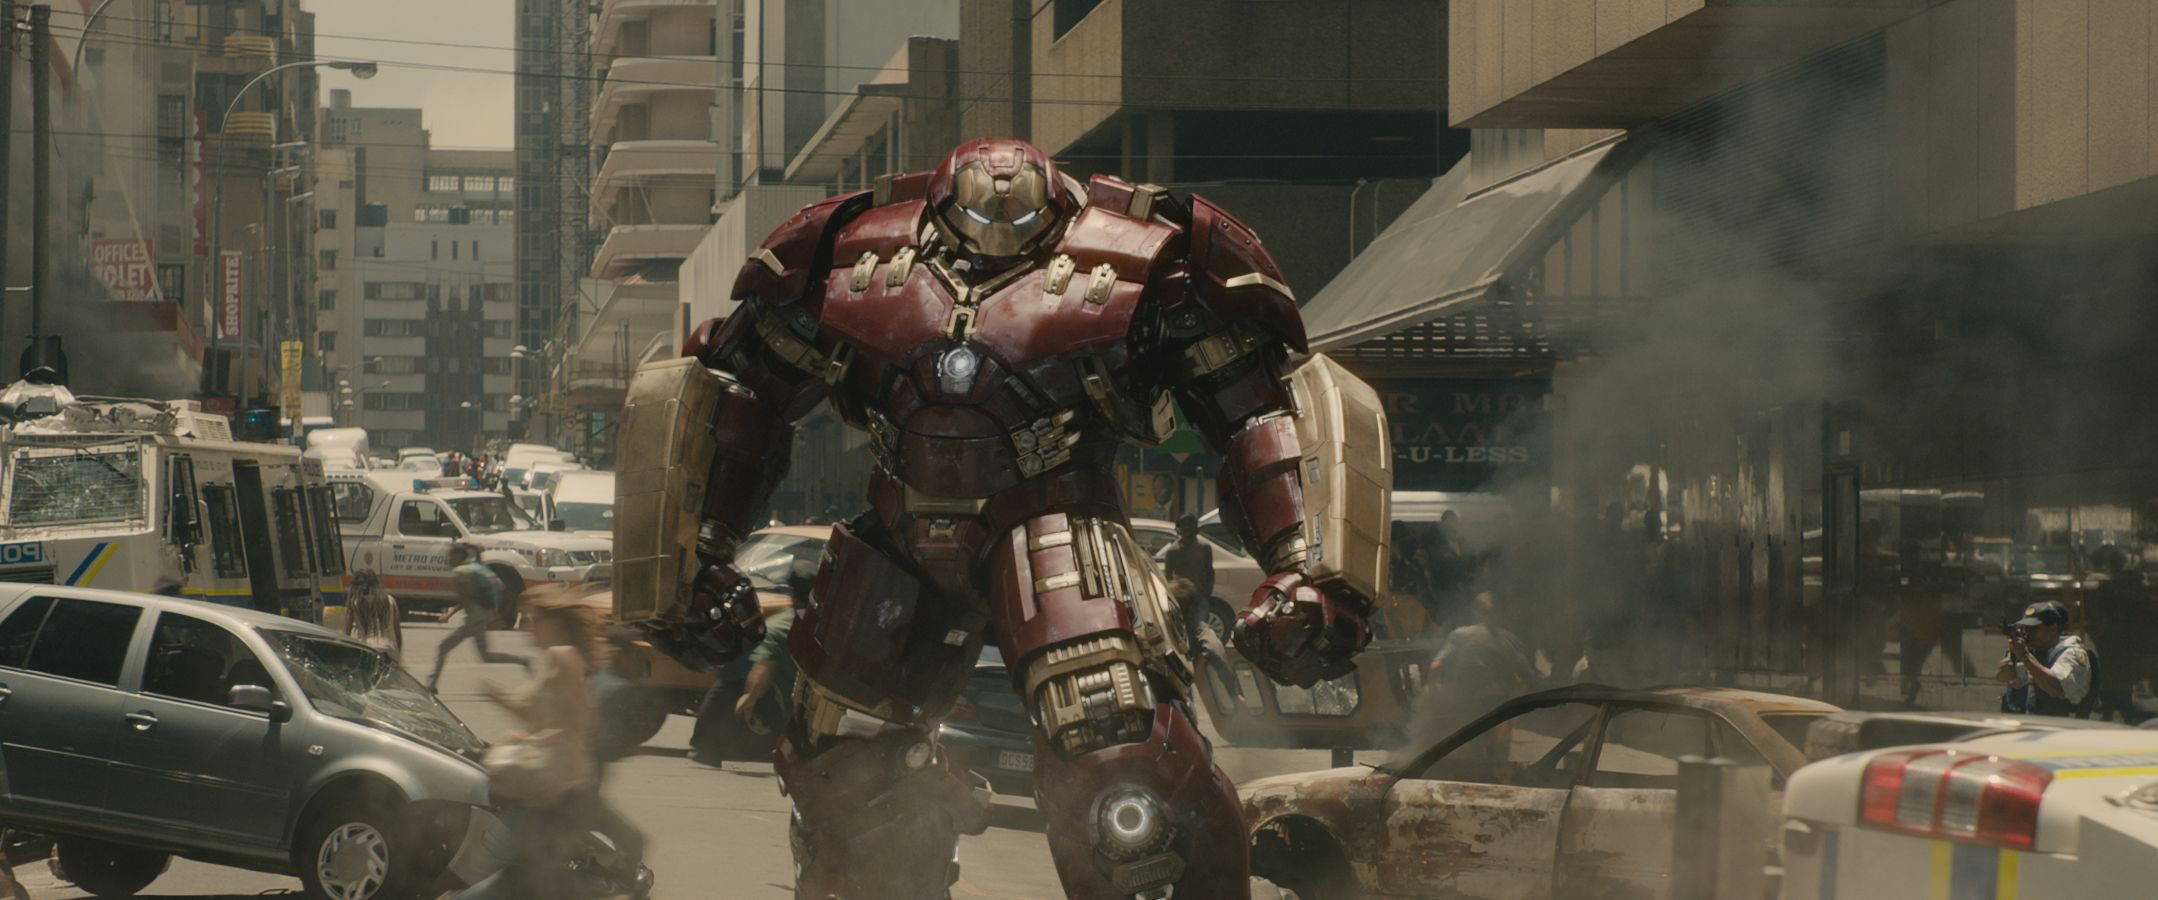 AVENGERS: AGE OF ULTRON: 75 High-Resolution Pictures Feature Vision, Hulk, and More